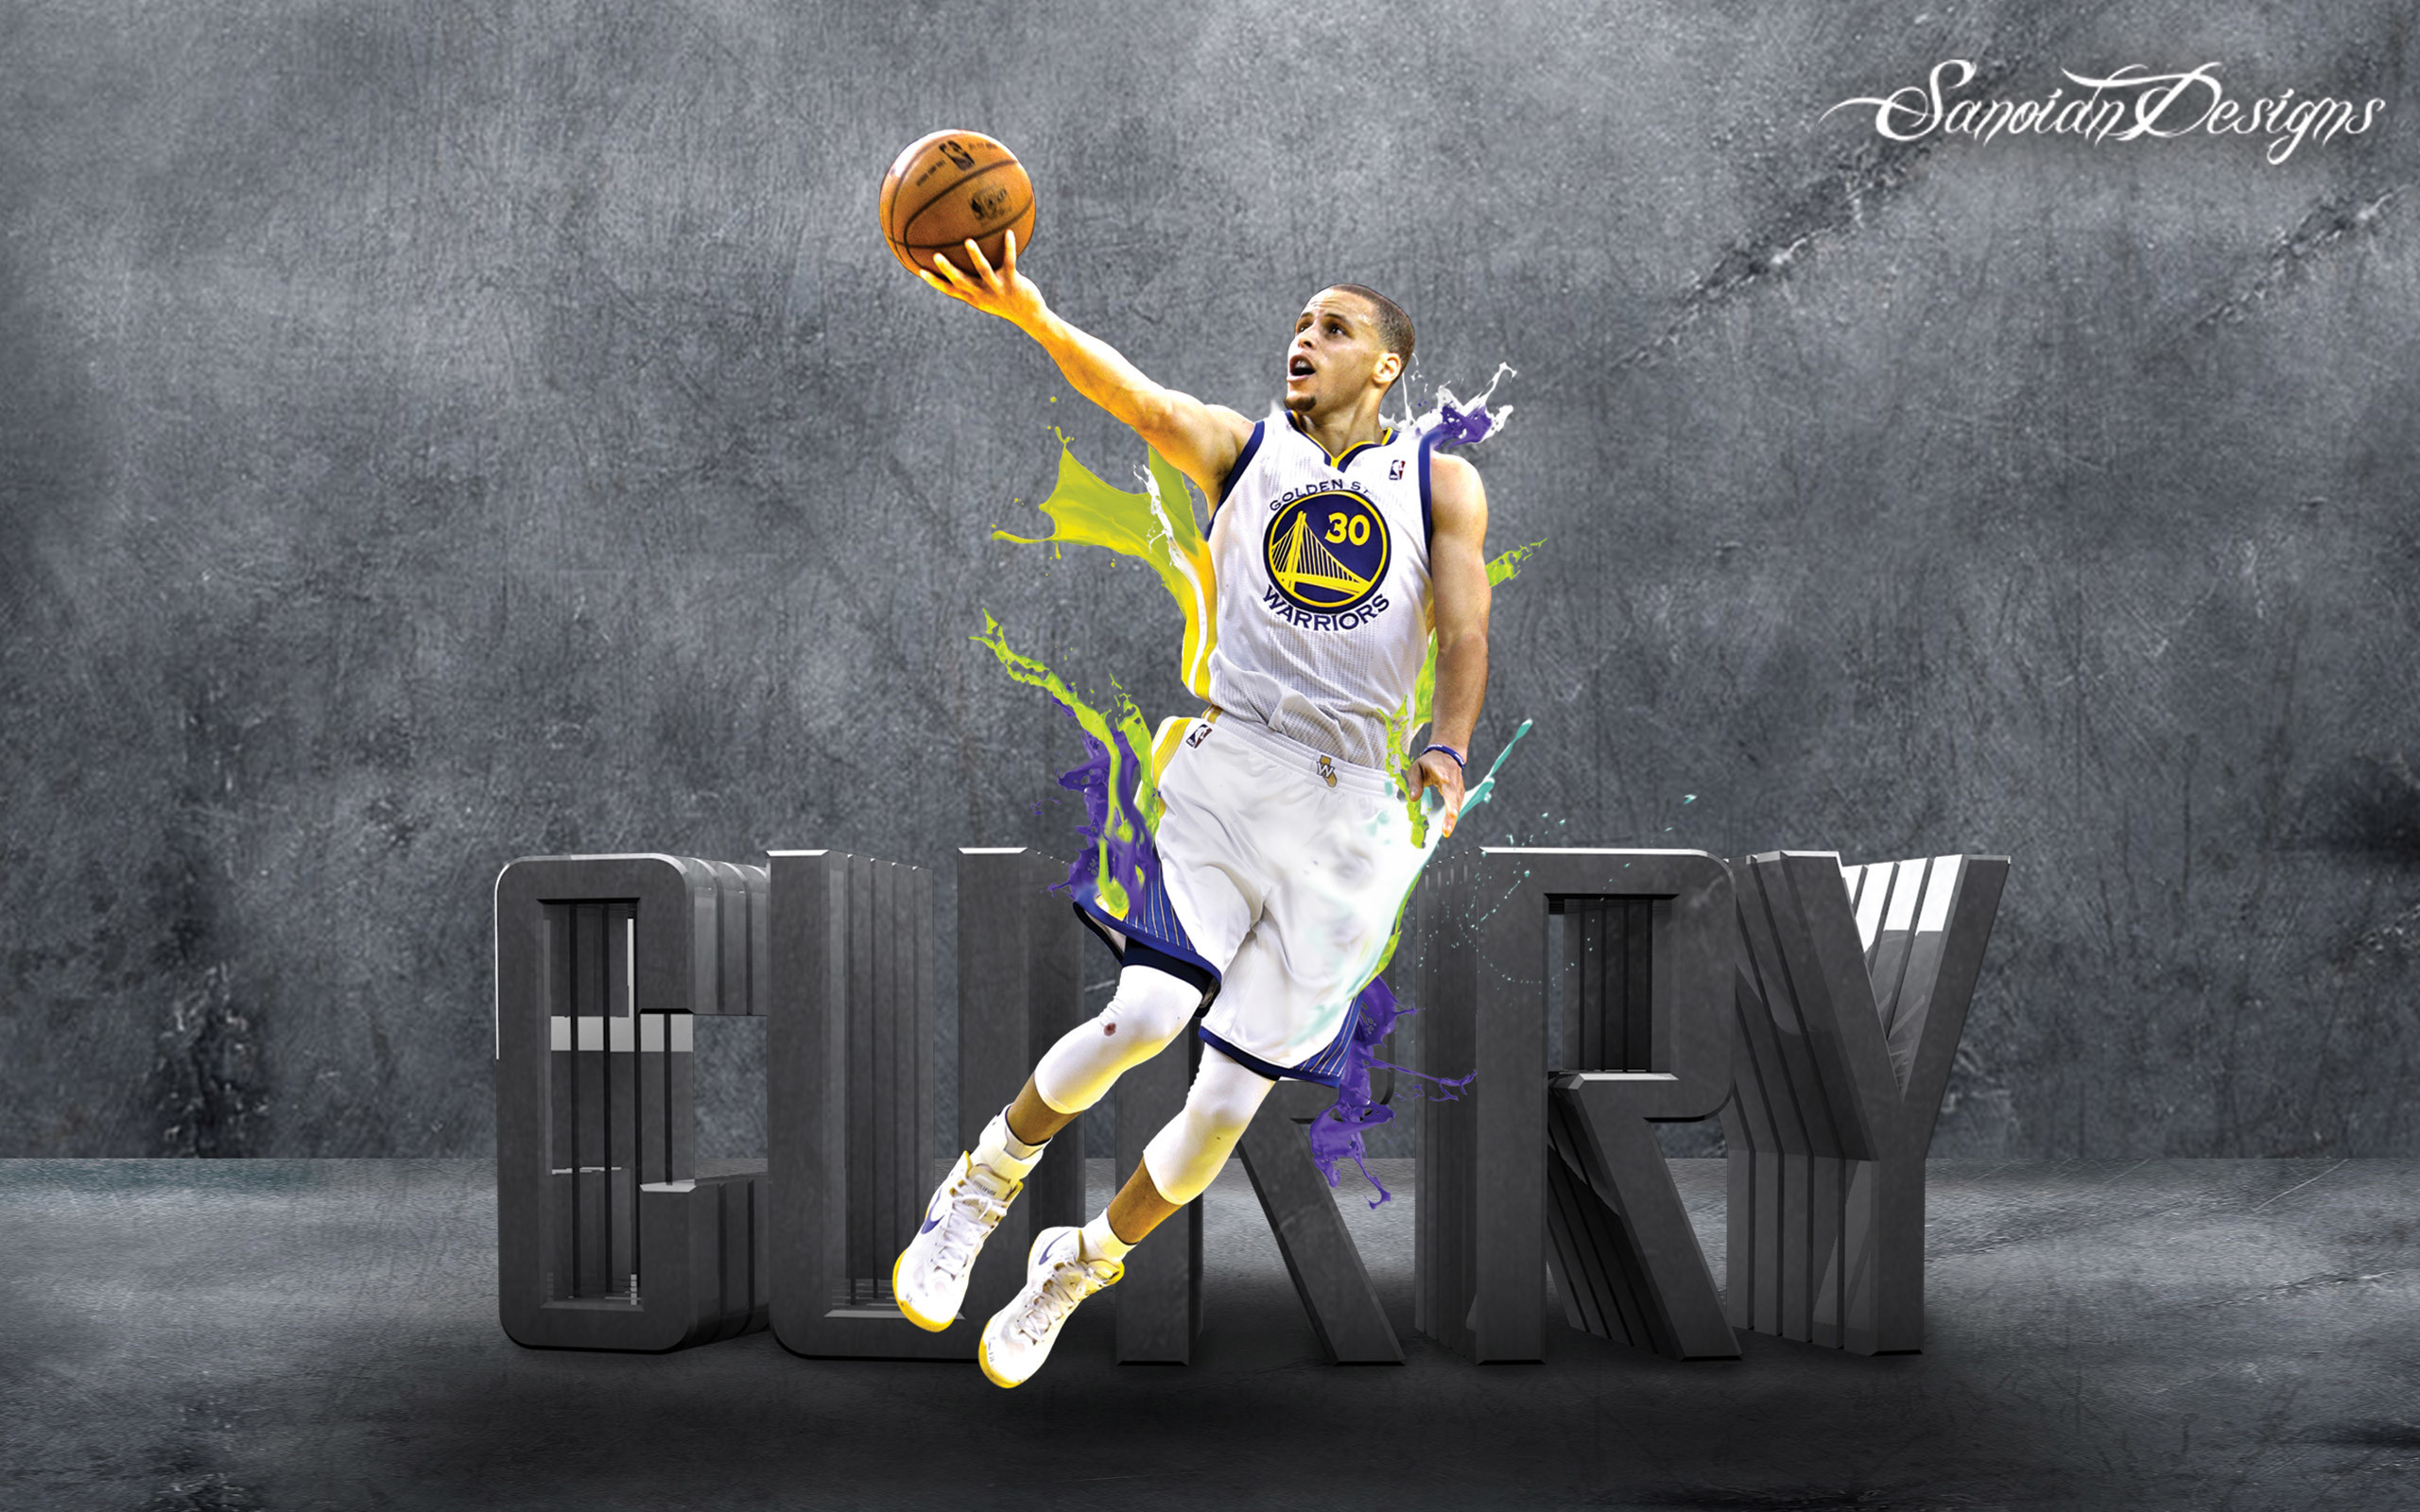 Stephen Curry Wallpaper HD 73 images 2560x1600